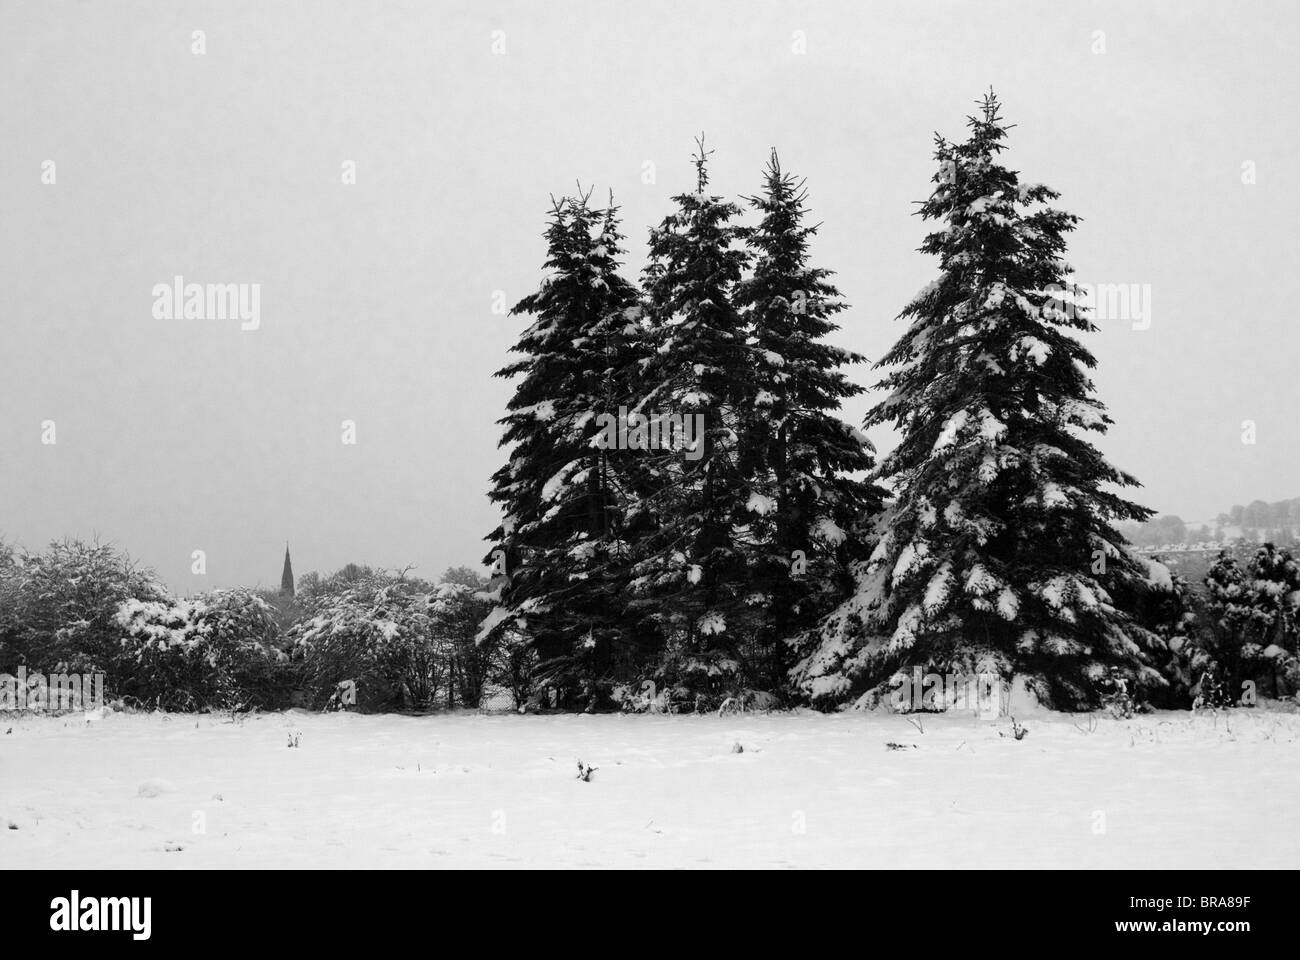 Black and white, evergreen trees in the snow, with church tower in distance. - Stock Image